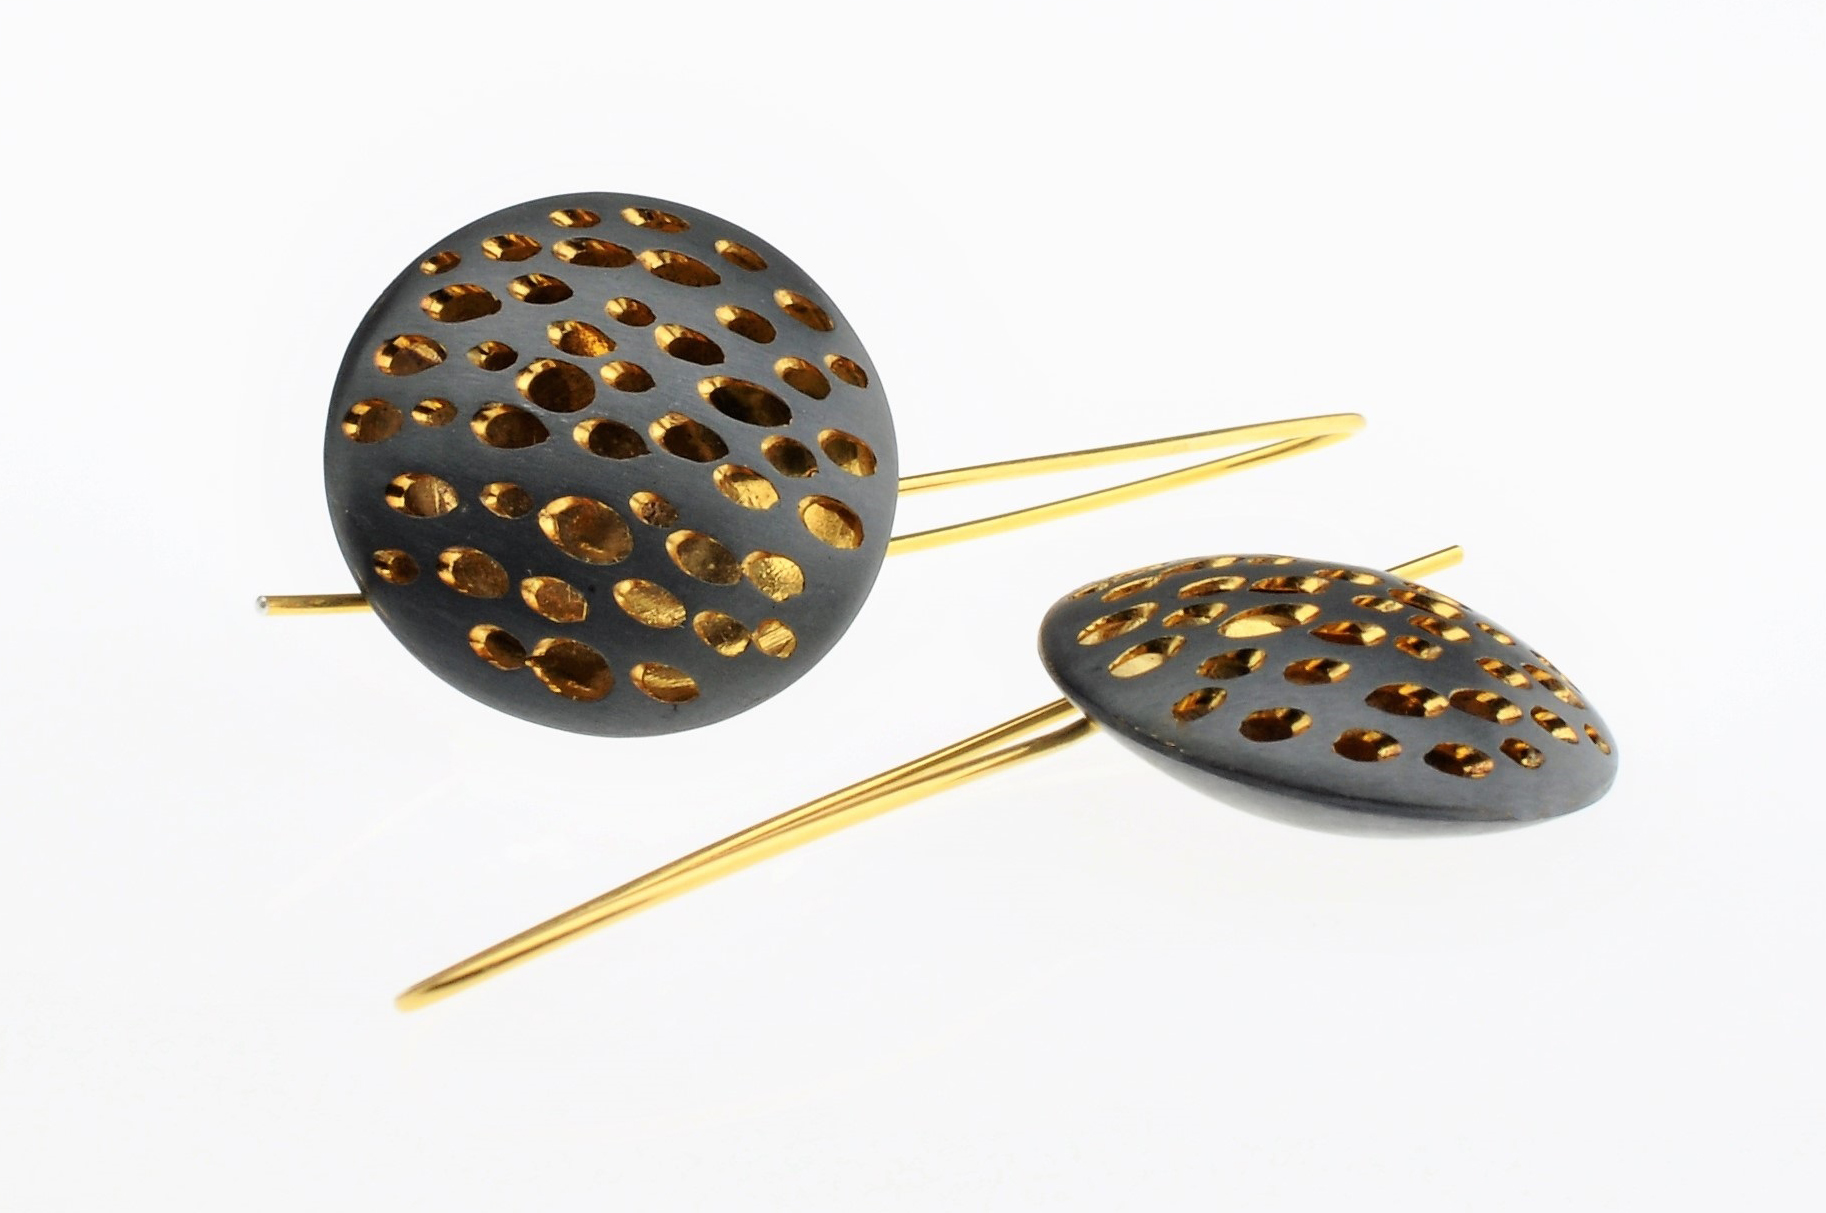 Oxidized Sterling Silver Disc Shaped Hook Earrings with Backplate in Gold Vermeil (BAS65H)- Sold